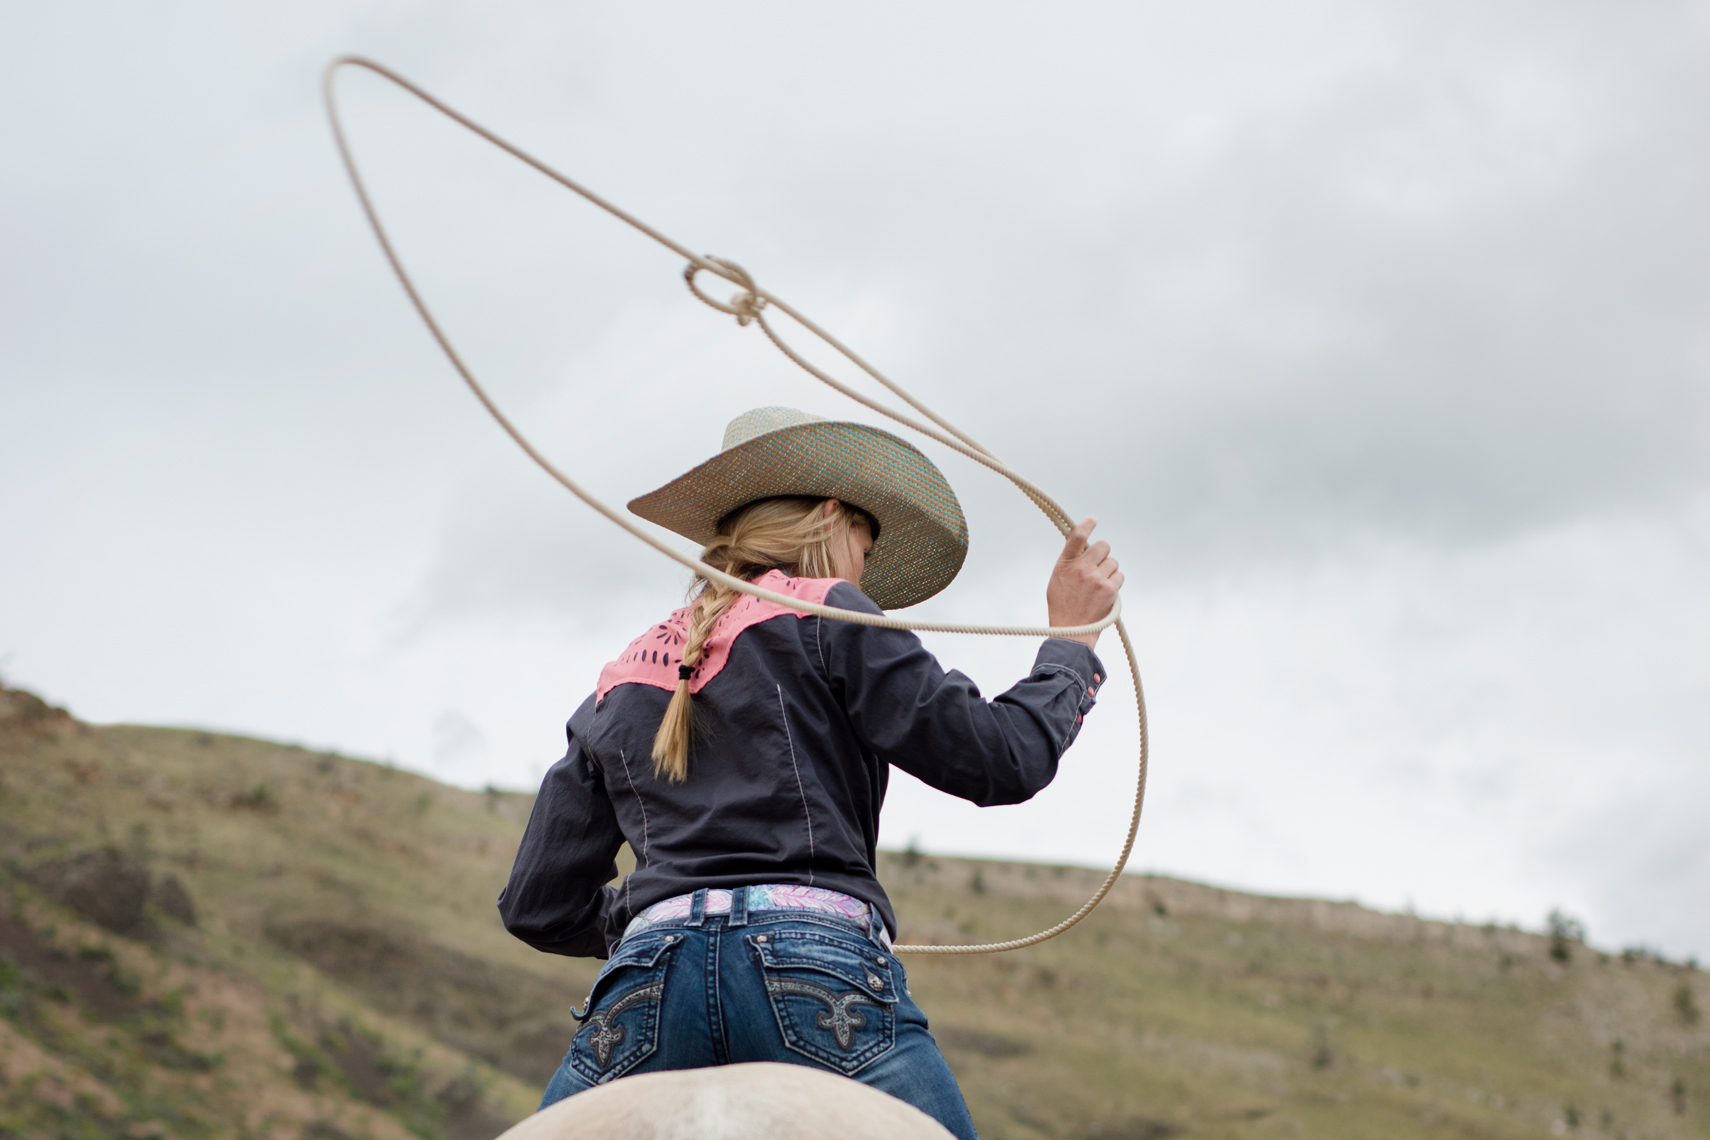 Breakaway Roping - Women of Rodeo